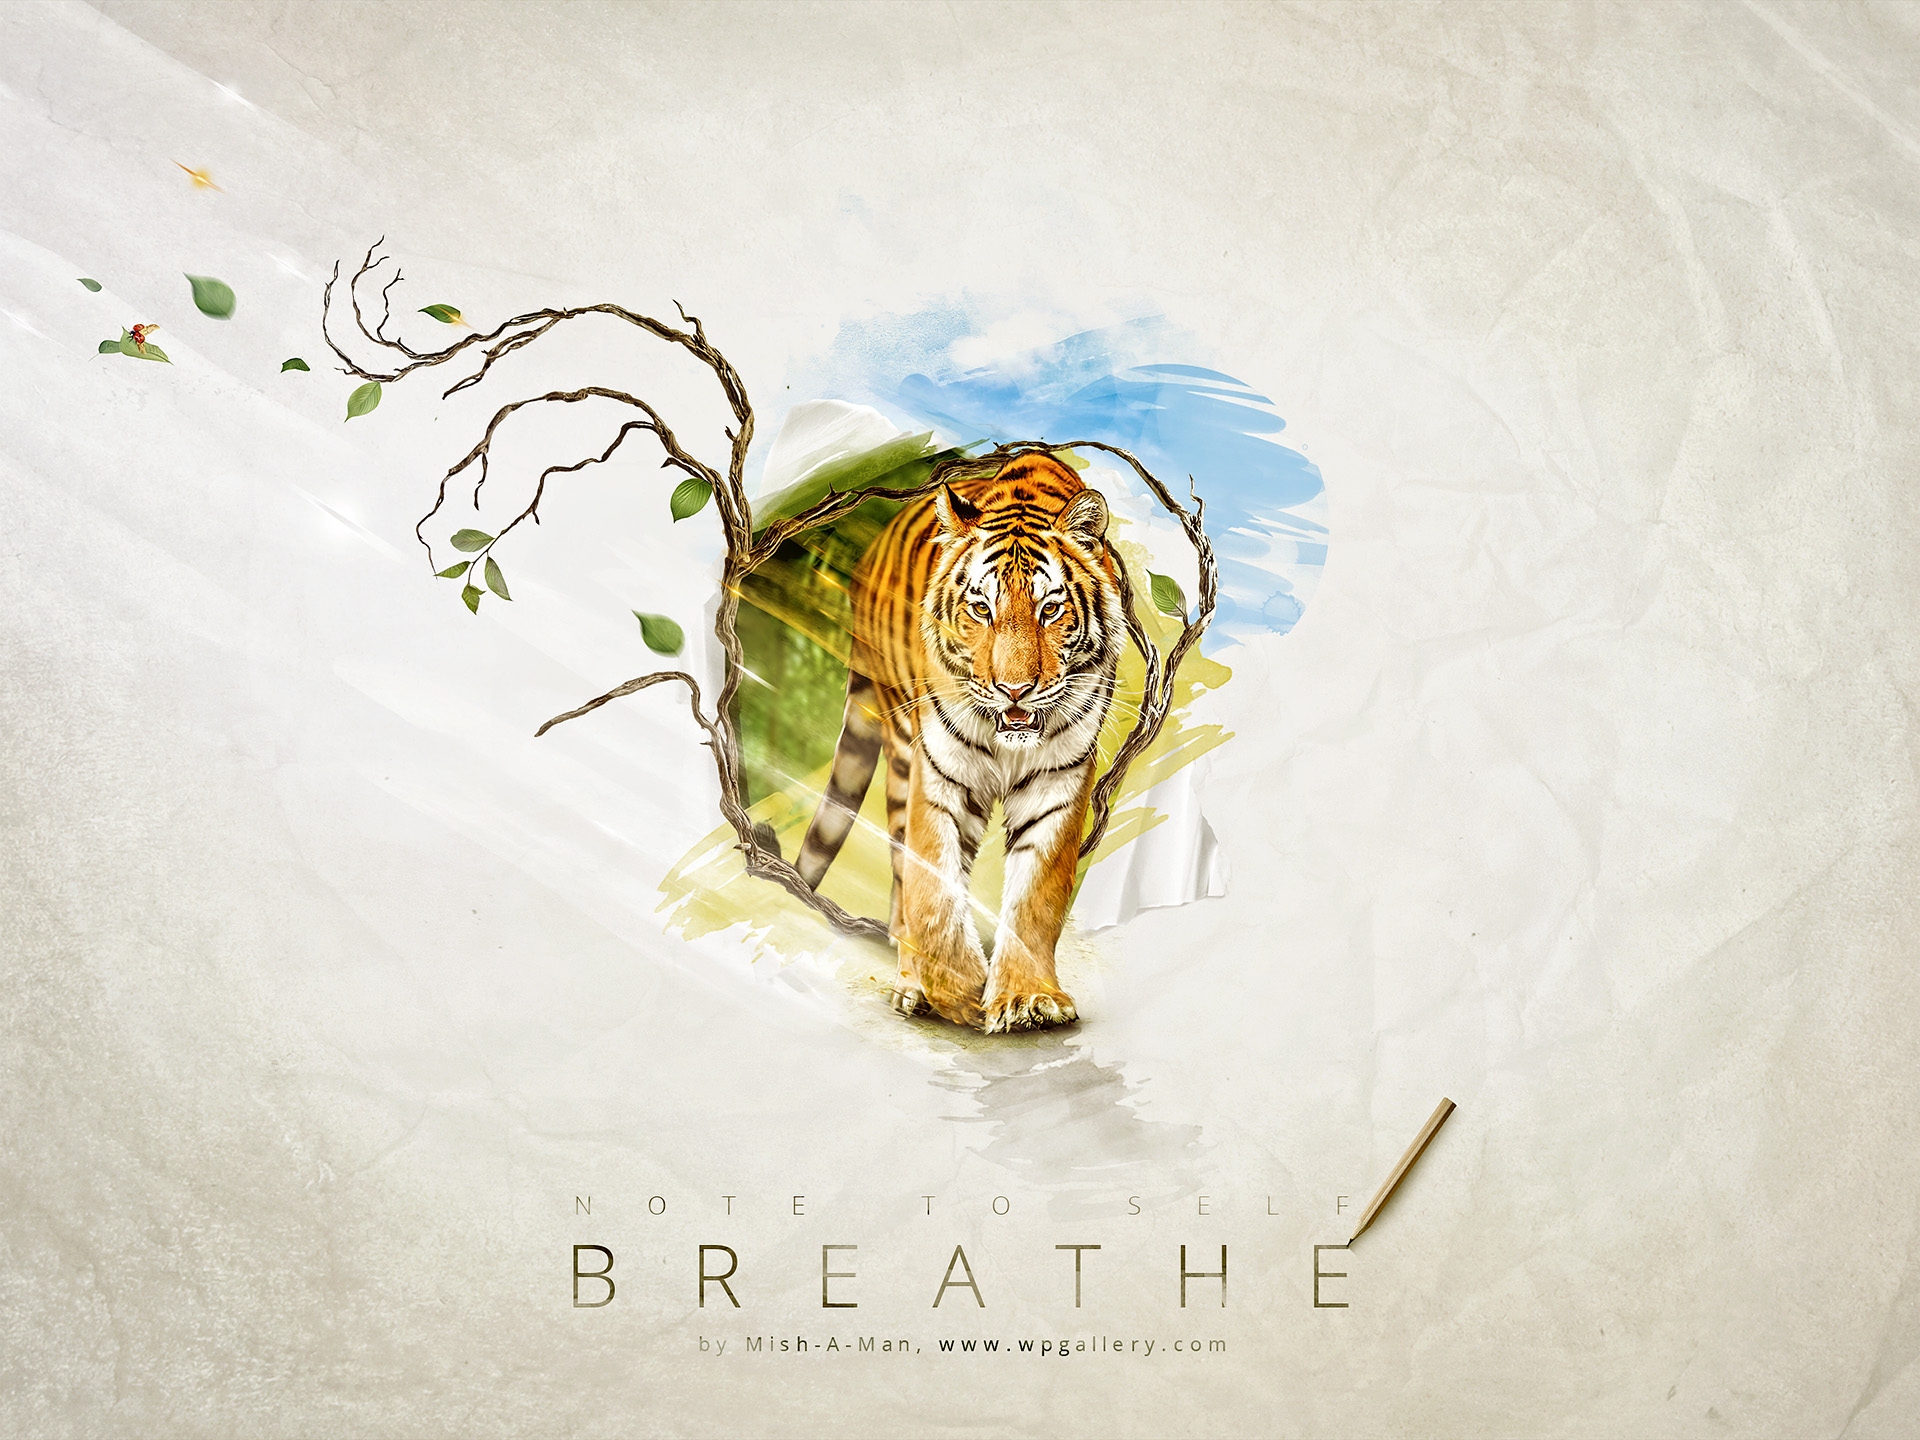 Breathe for 1920 x 1440 resolution